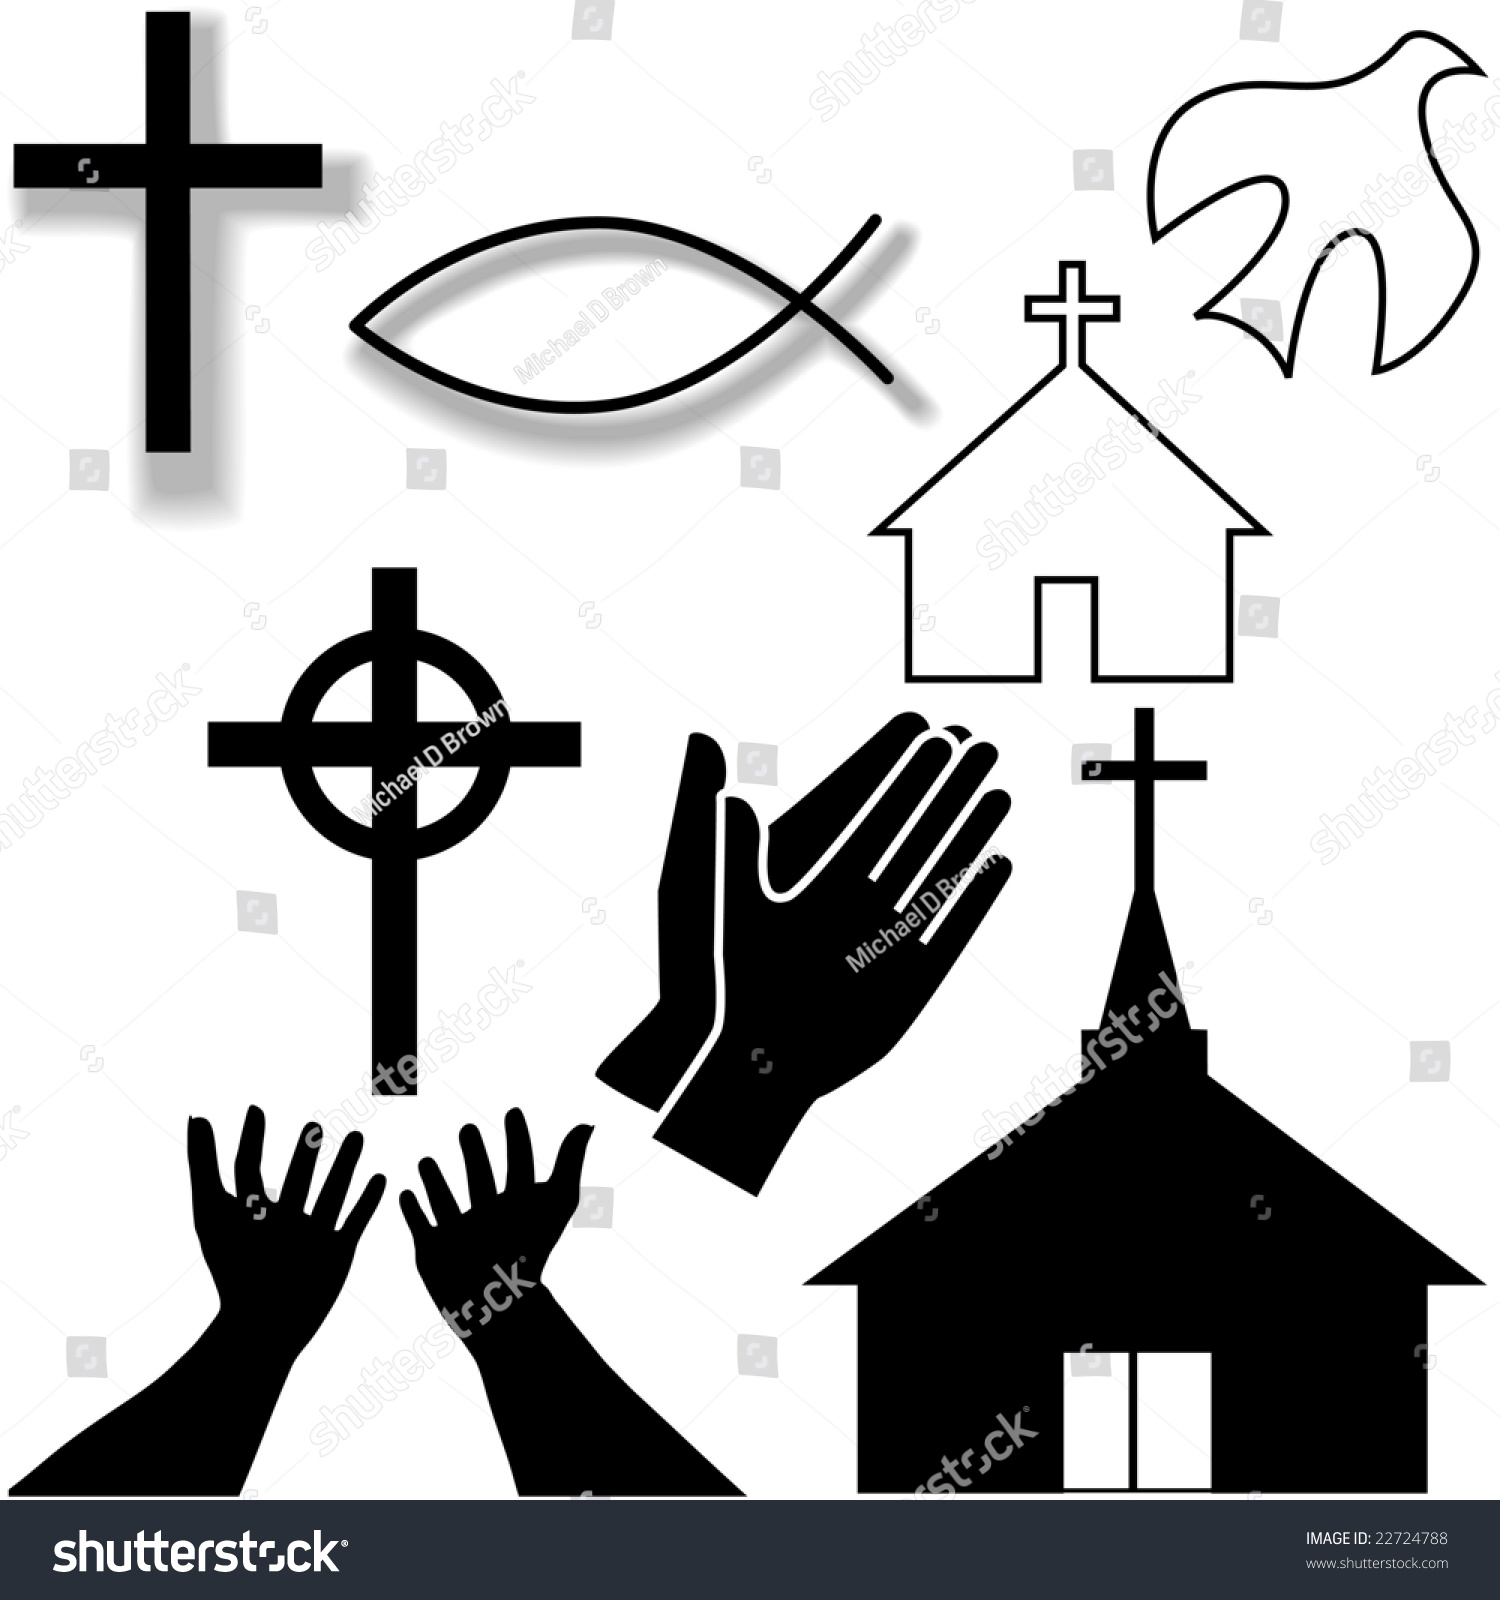 The Symbol Of The Church In Coursework Academic Writing Service